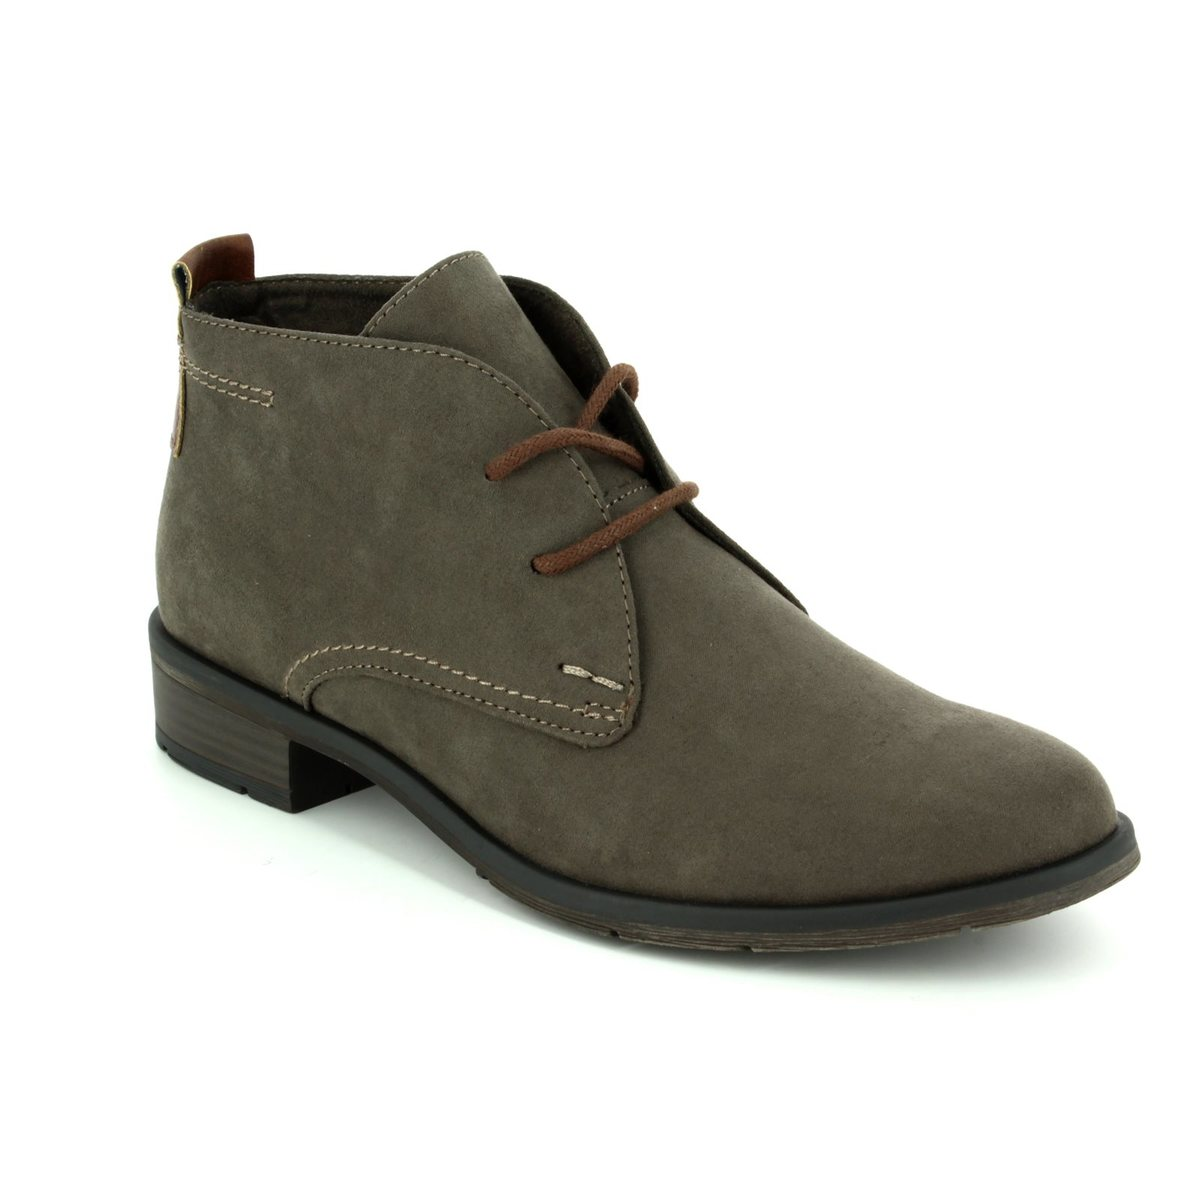 Marco Tozzi Ankle boots - taupe xC1qyMKg